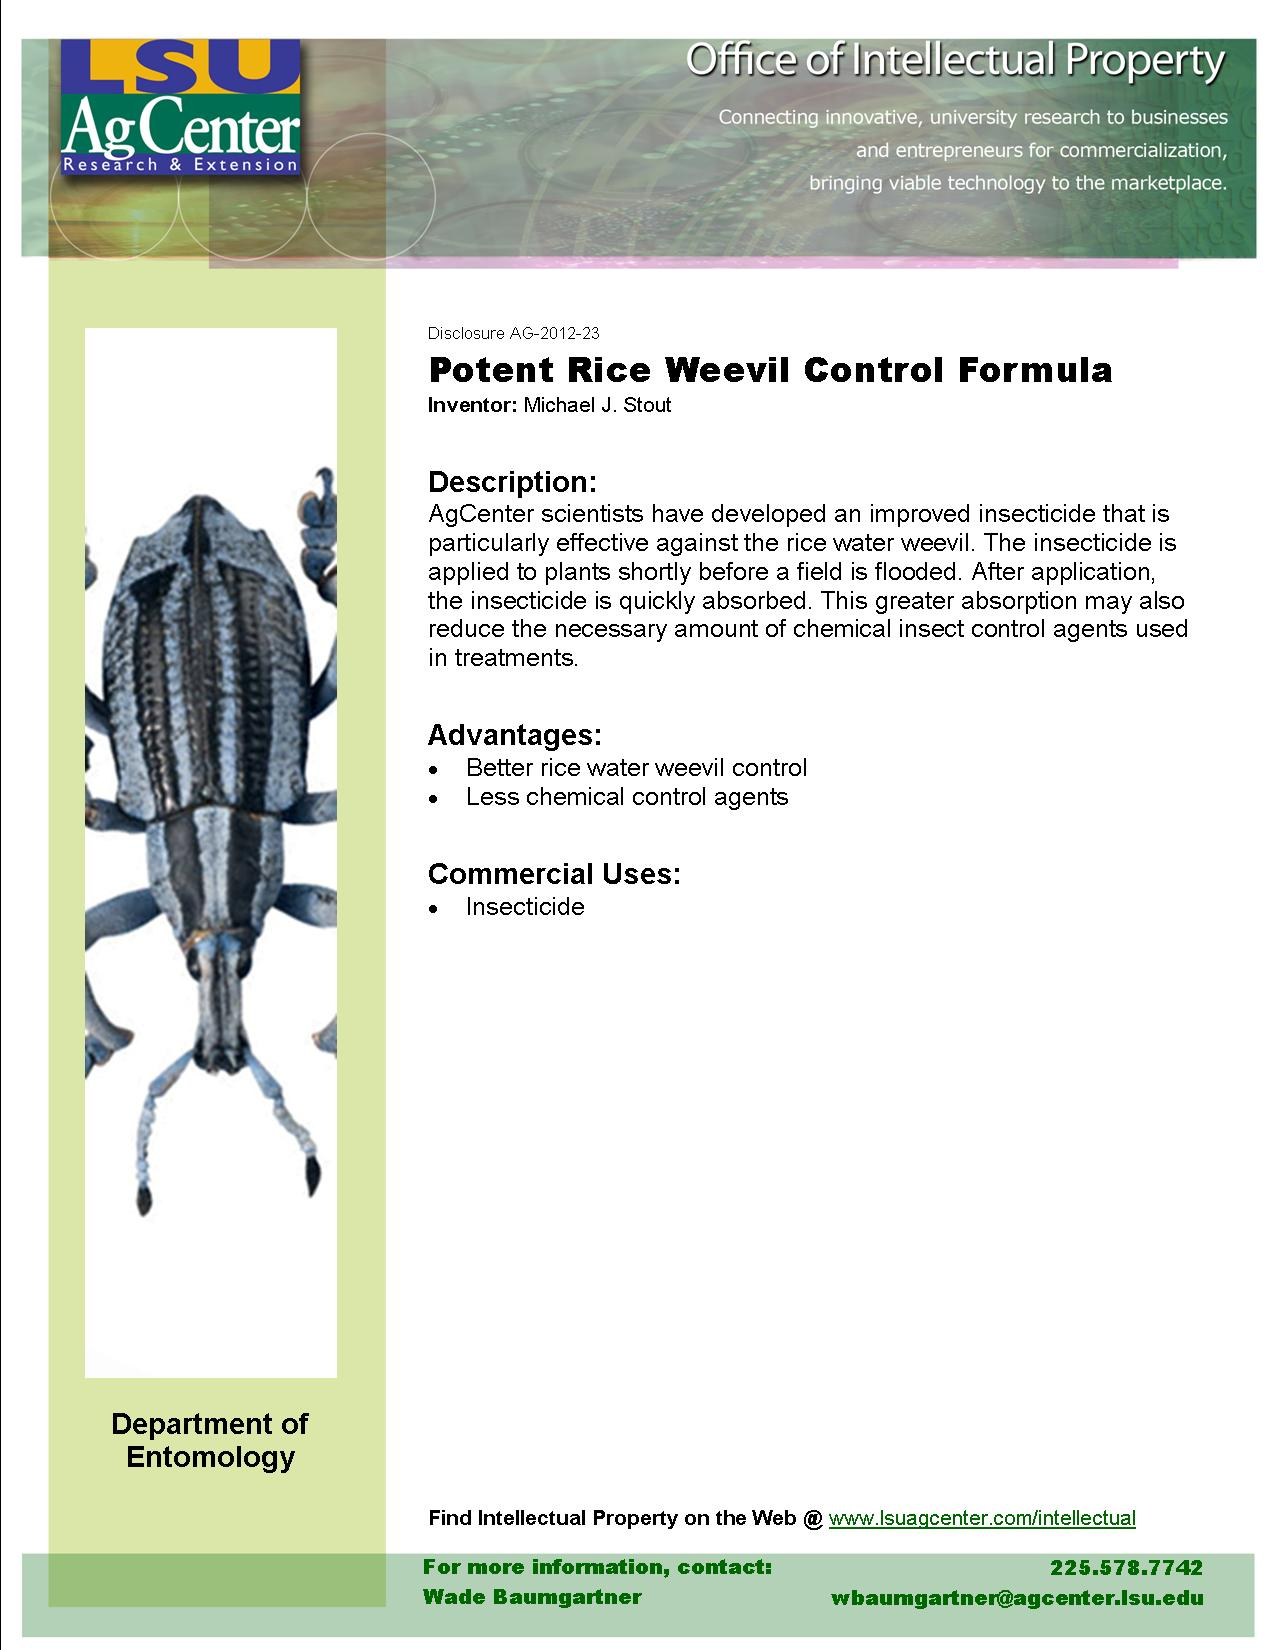 Potent Rice Weevil Control Formula